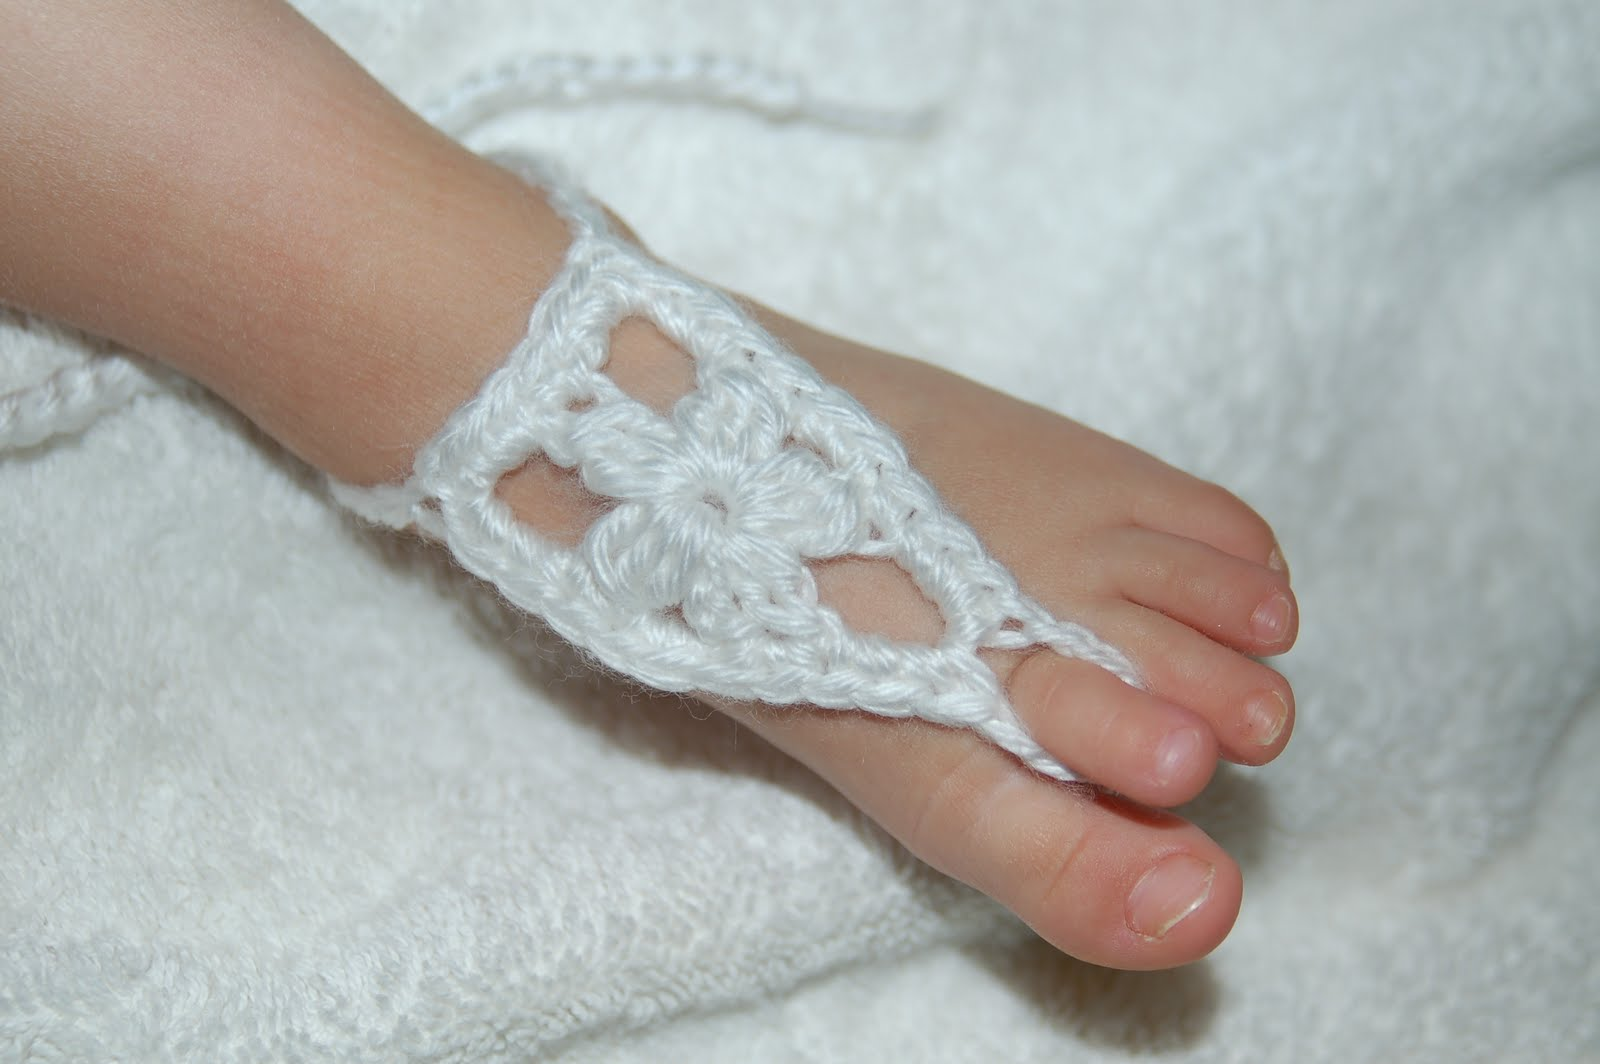 Crochet Pattern For Baby Barefoot Sandals : Living the Craft Life: Baby Barefoot Sandals - Flower